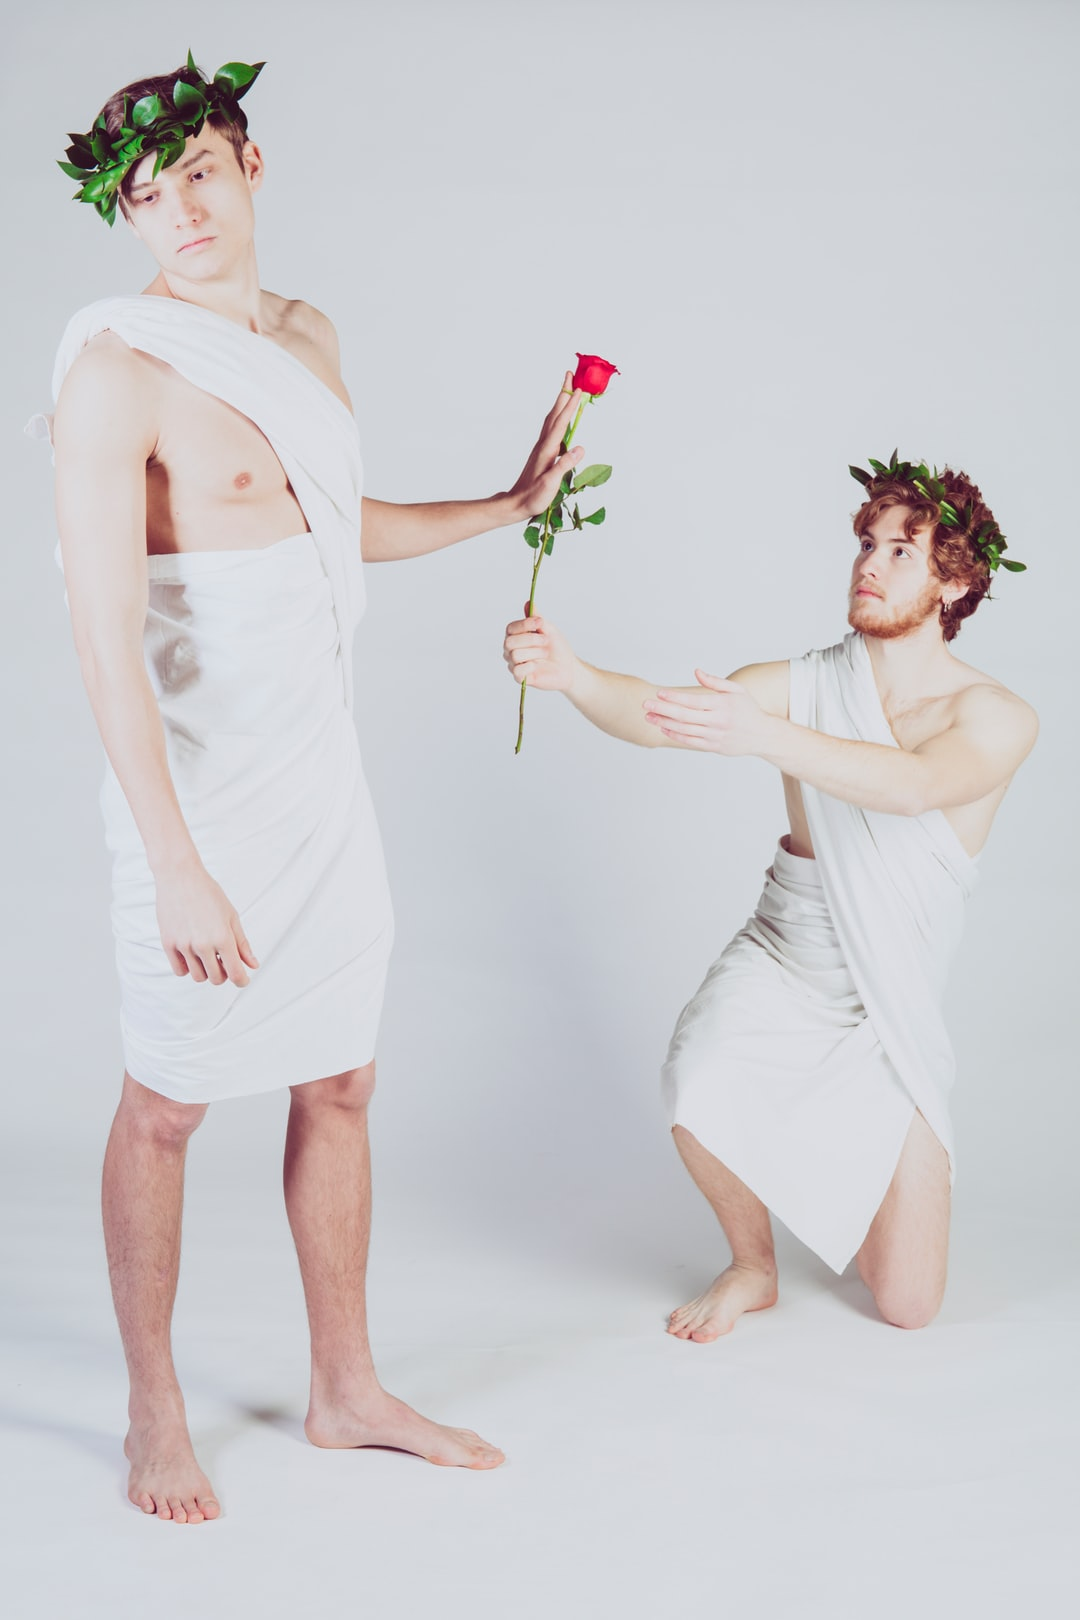 Studio project about narcissus' myth